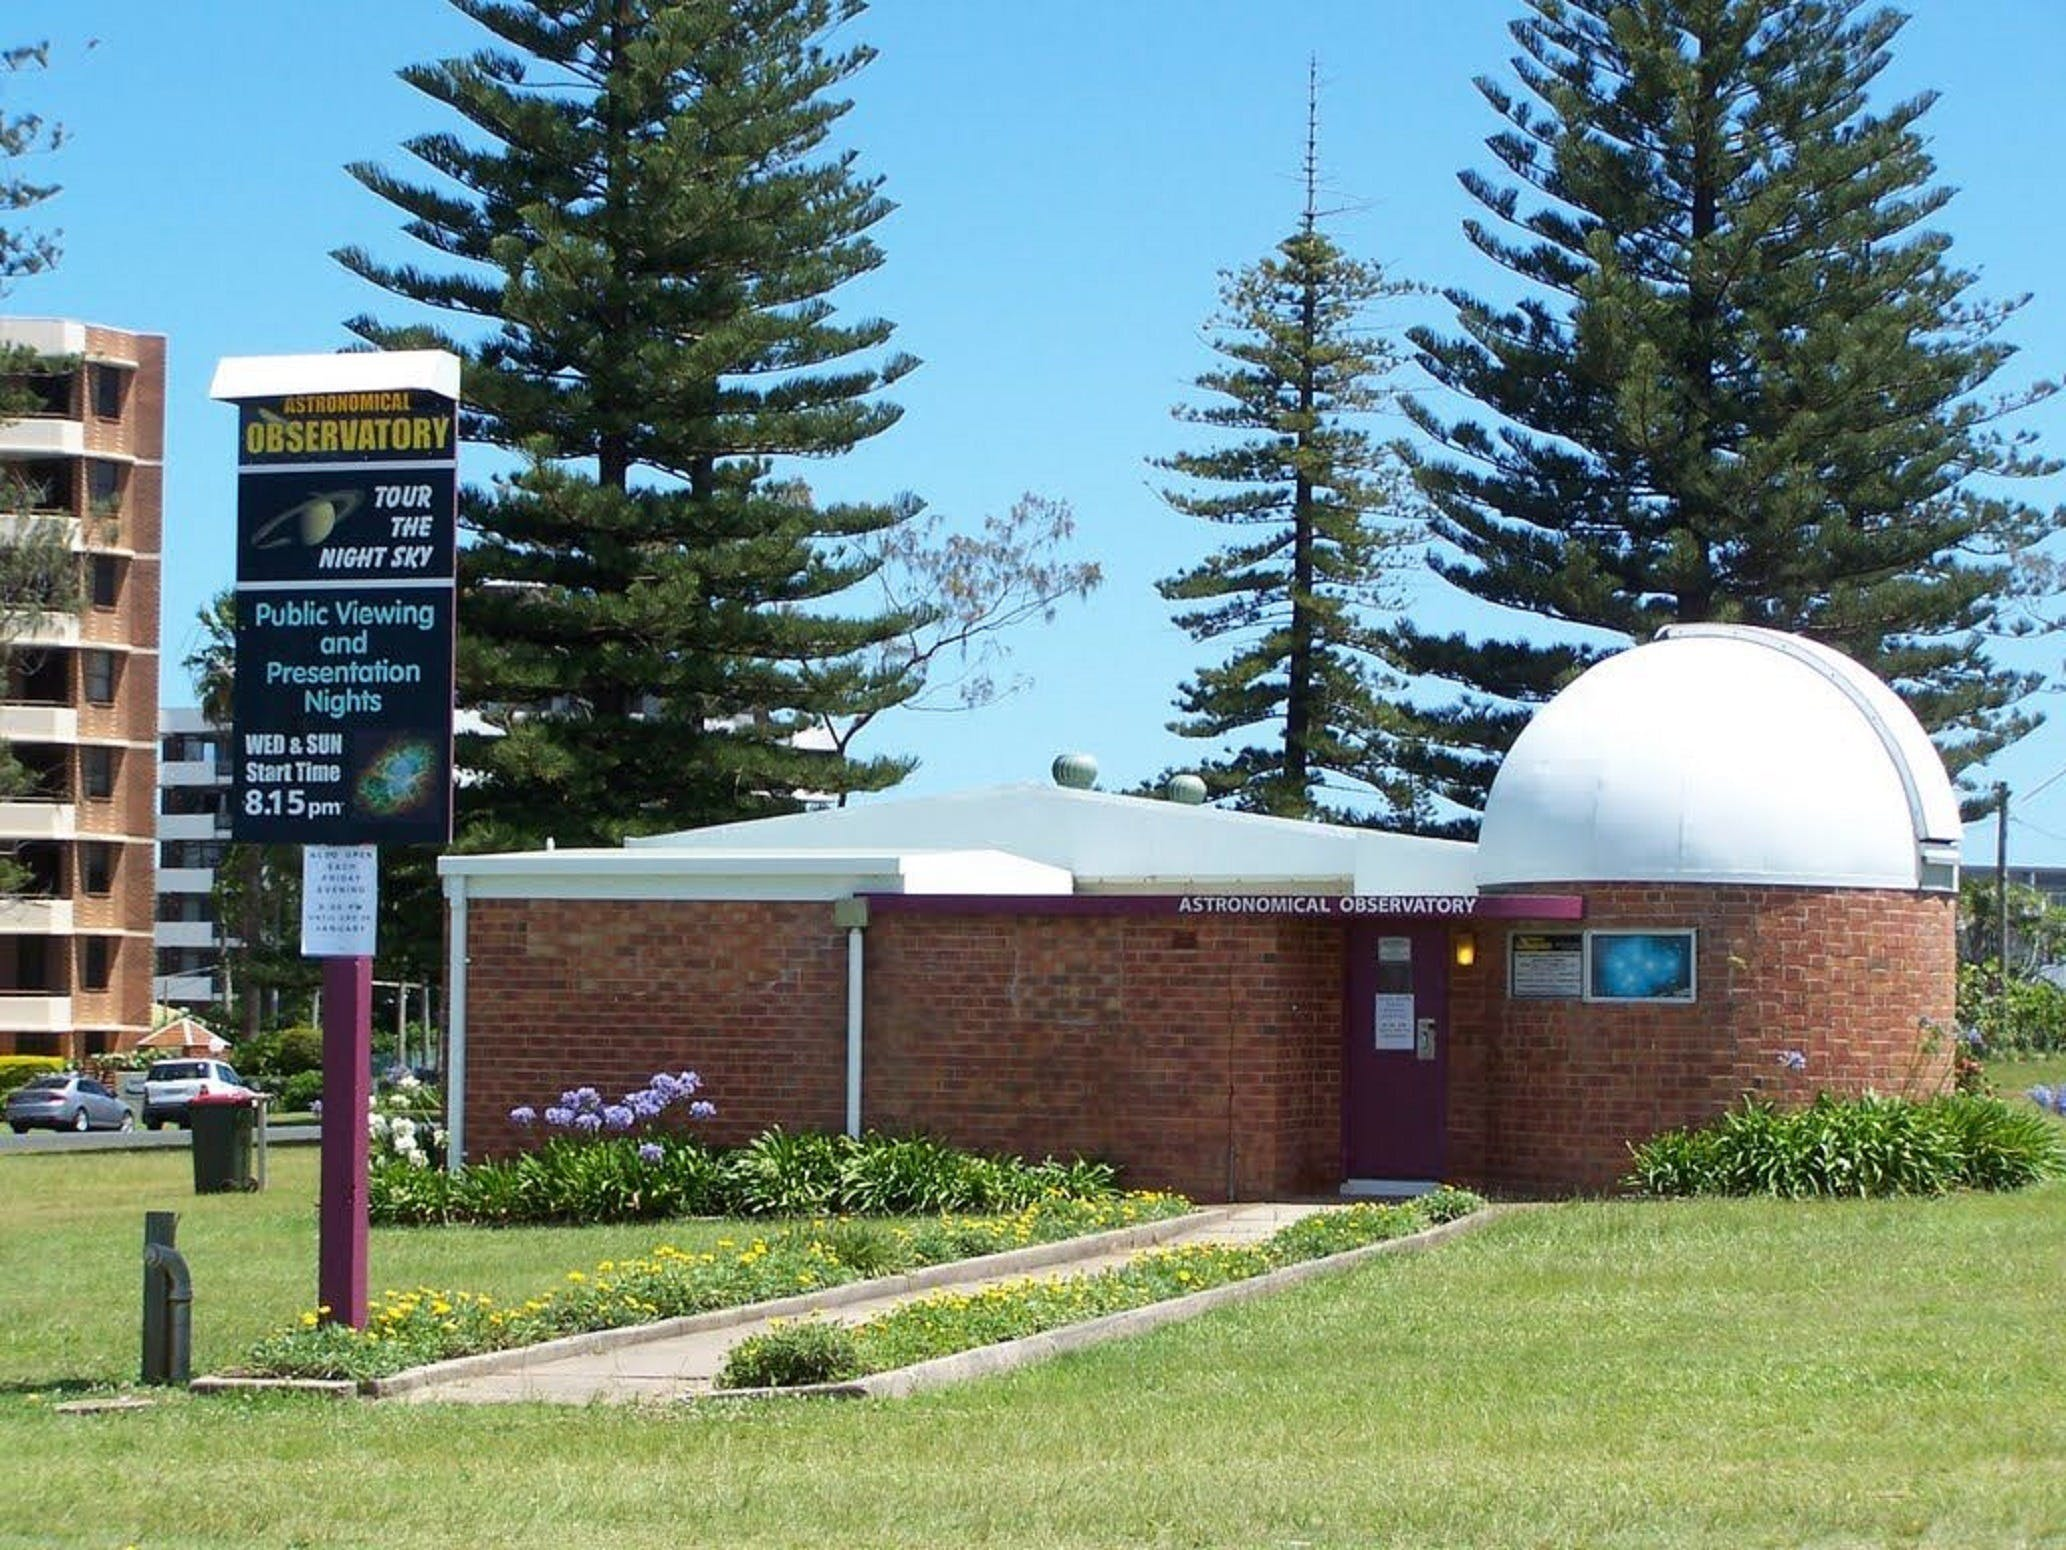 Port Macquarie Astronomical Observatory - QLD Tourism